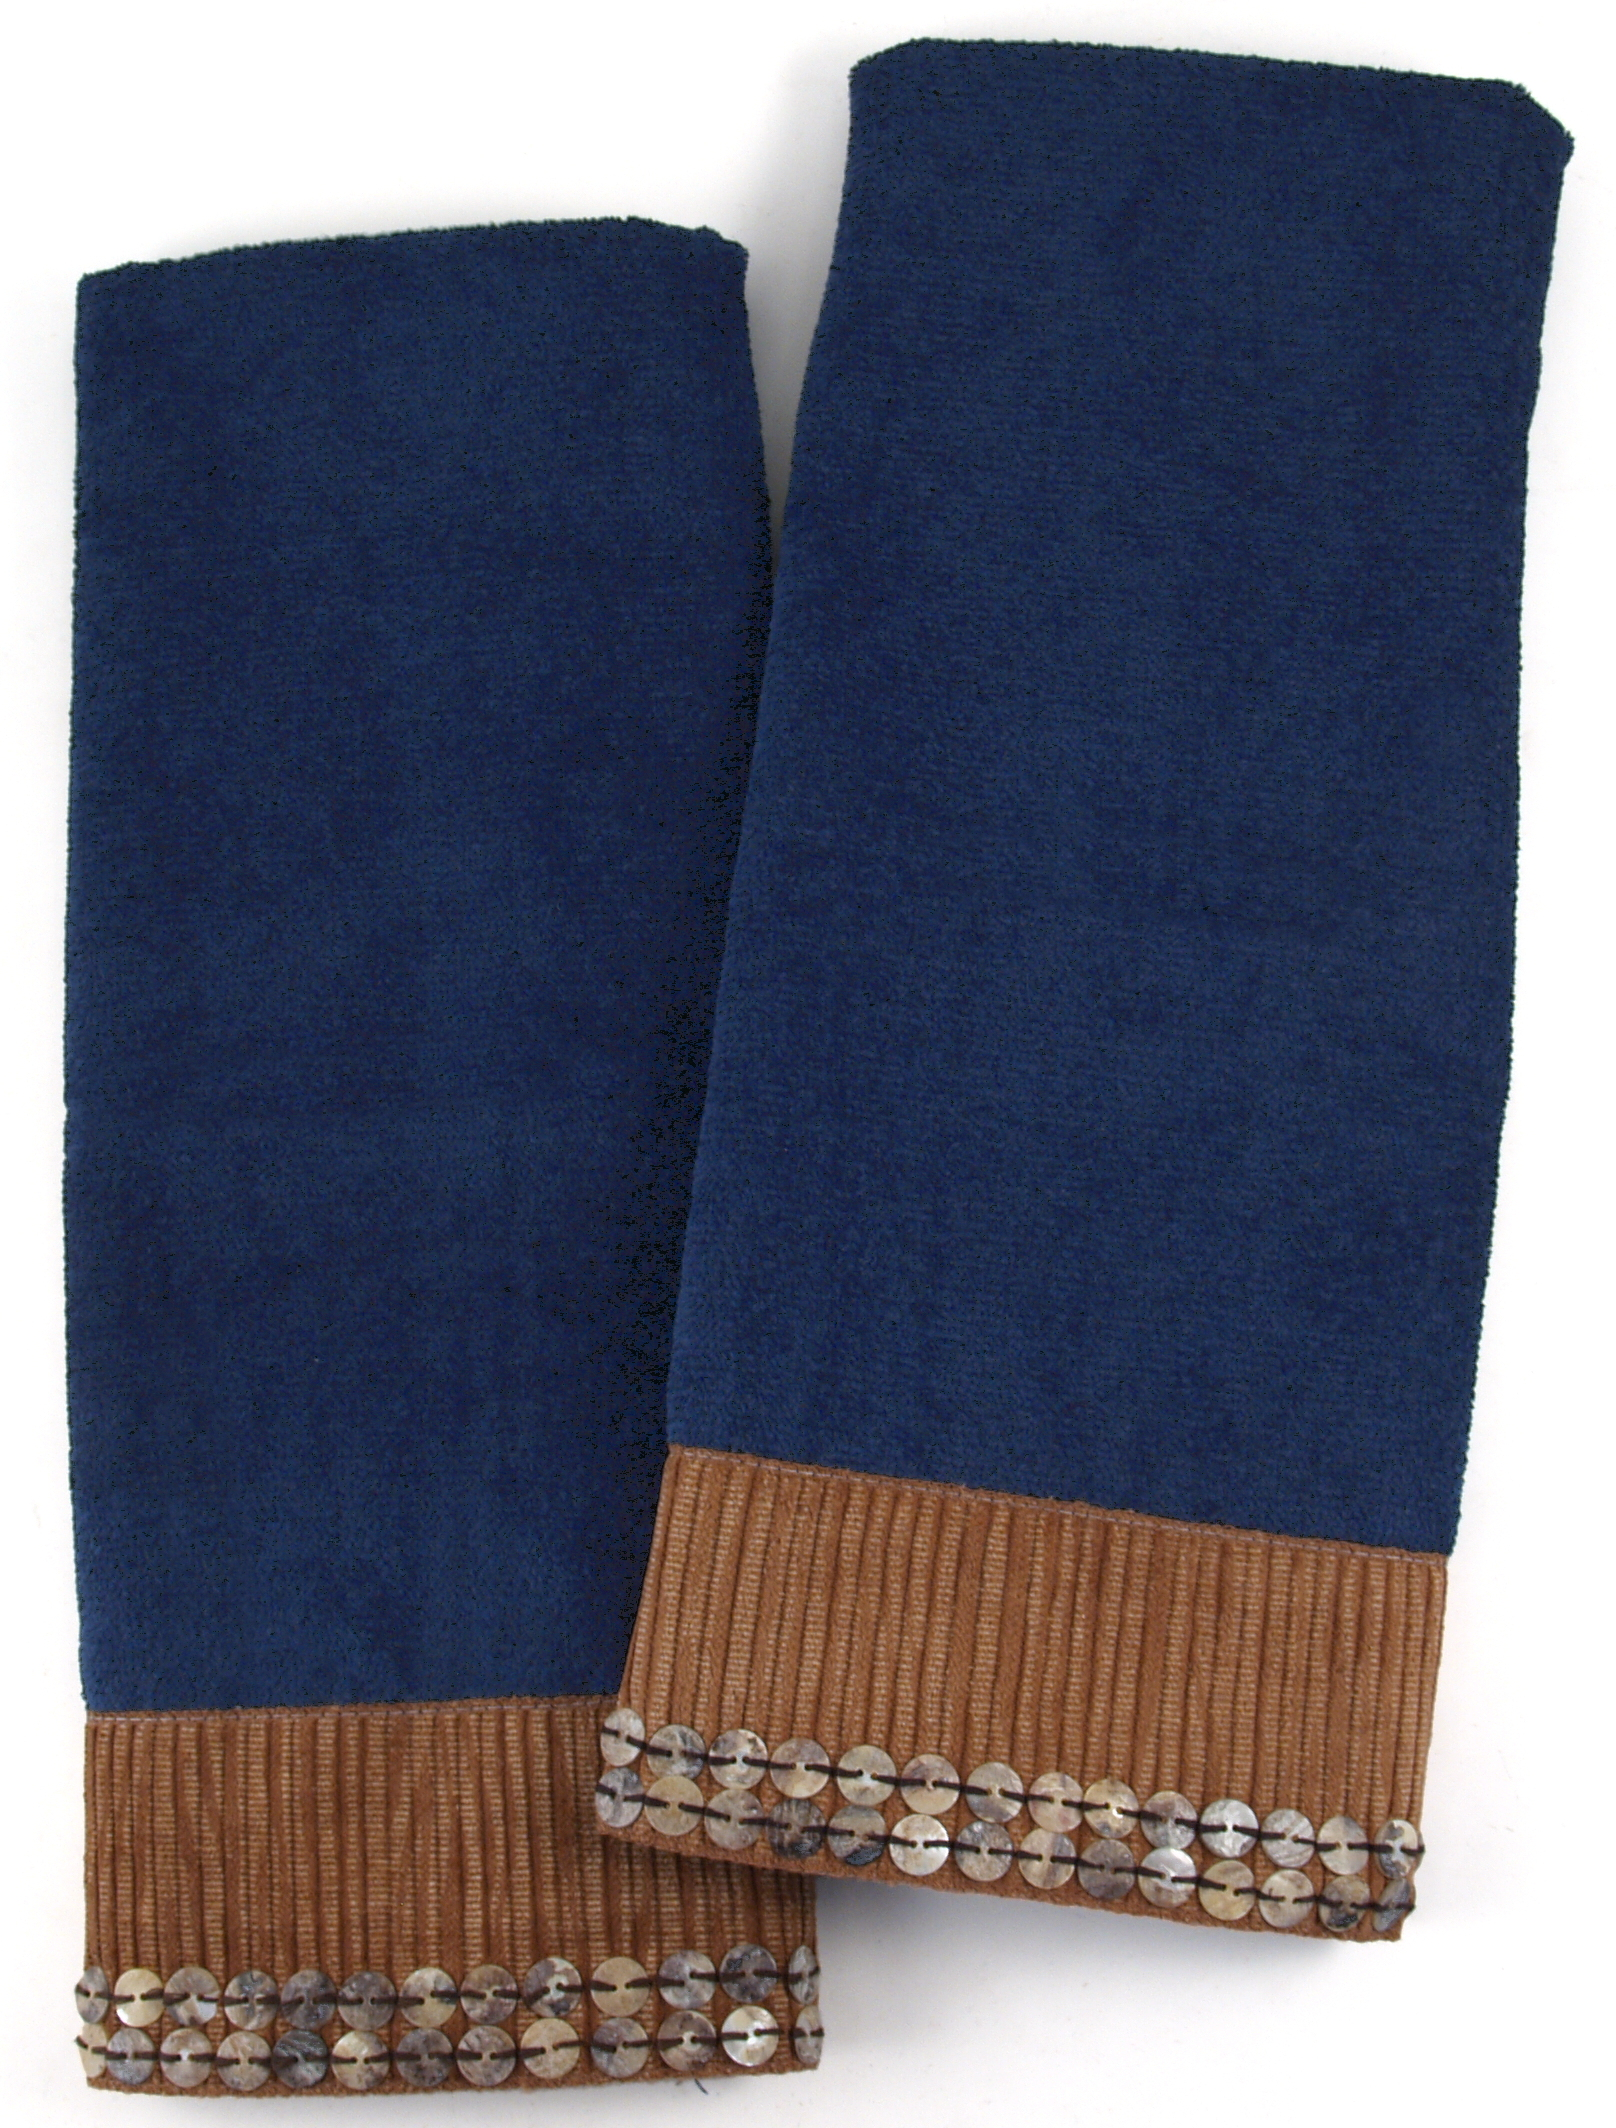 Midnight Blue Rattan Cotton Hand Towel With Shell Band, Set Of 2